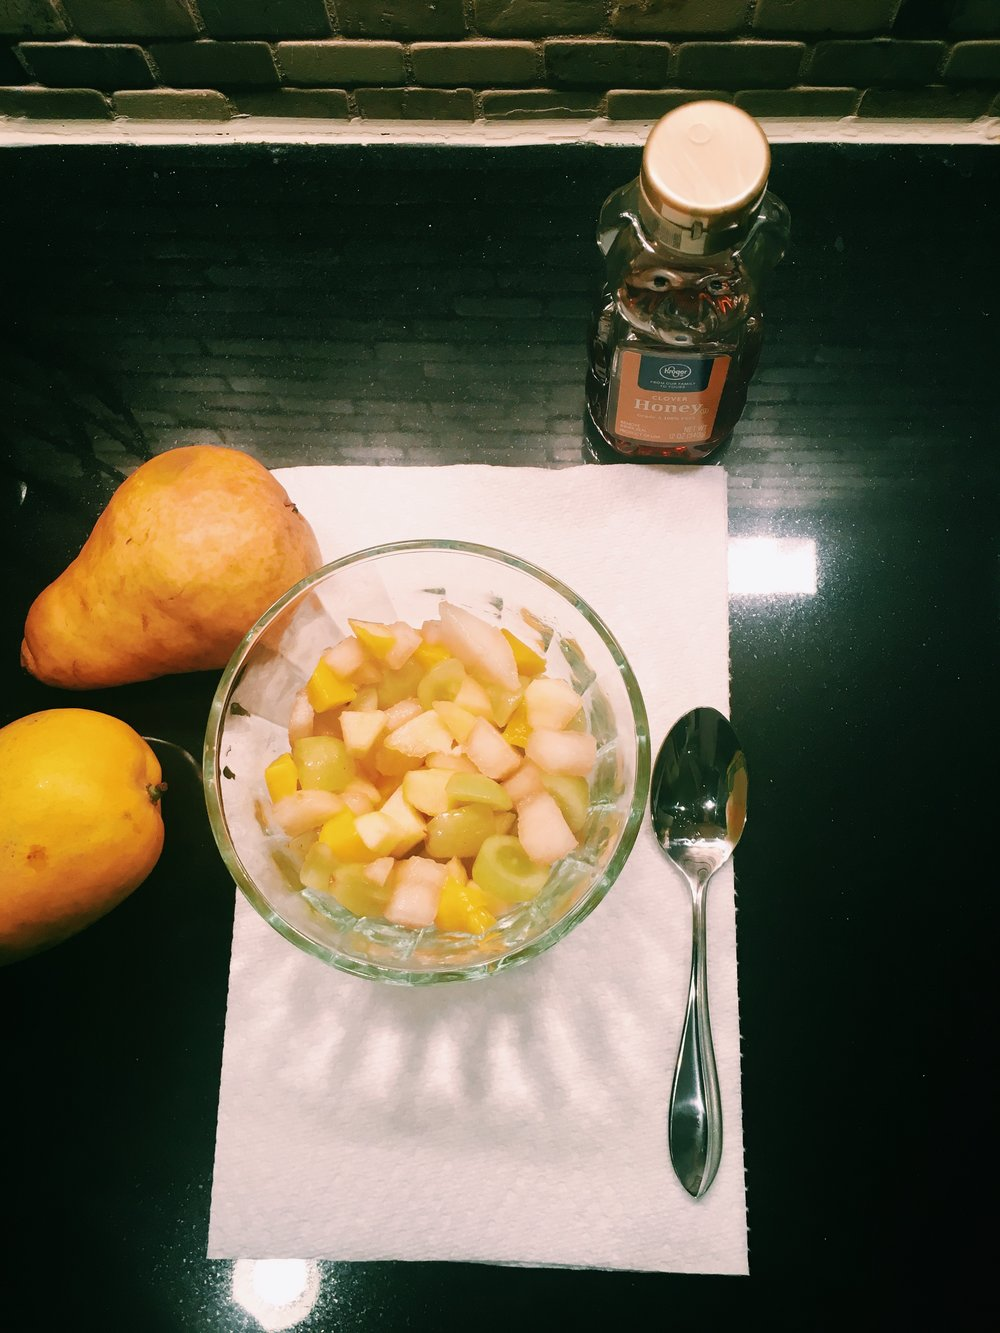 A Healthy Treat - Recipe:1 Mango1 Pear1 Small bowl of grapes1 Tbsp of honey or agave